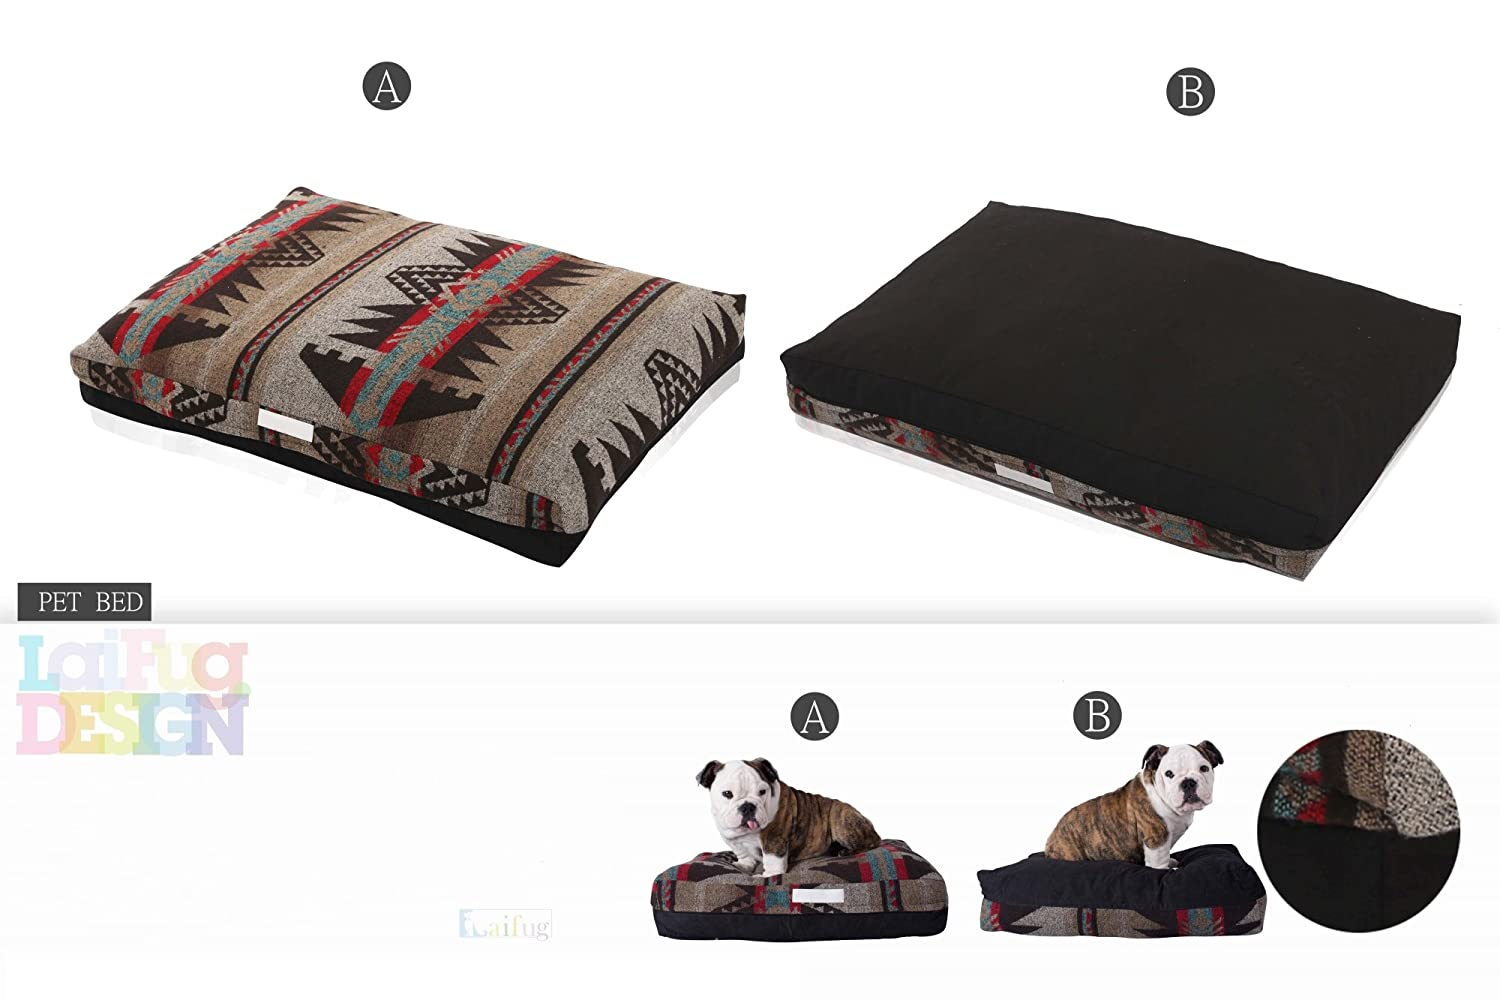 Amazon.com: Laifug Pet/Dog Bed with Removable Washable Cover(Small 23x18x5,Indian Style/Black) Limited Edition Resurrection: Pet Supplies